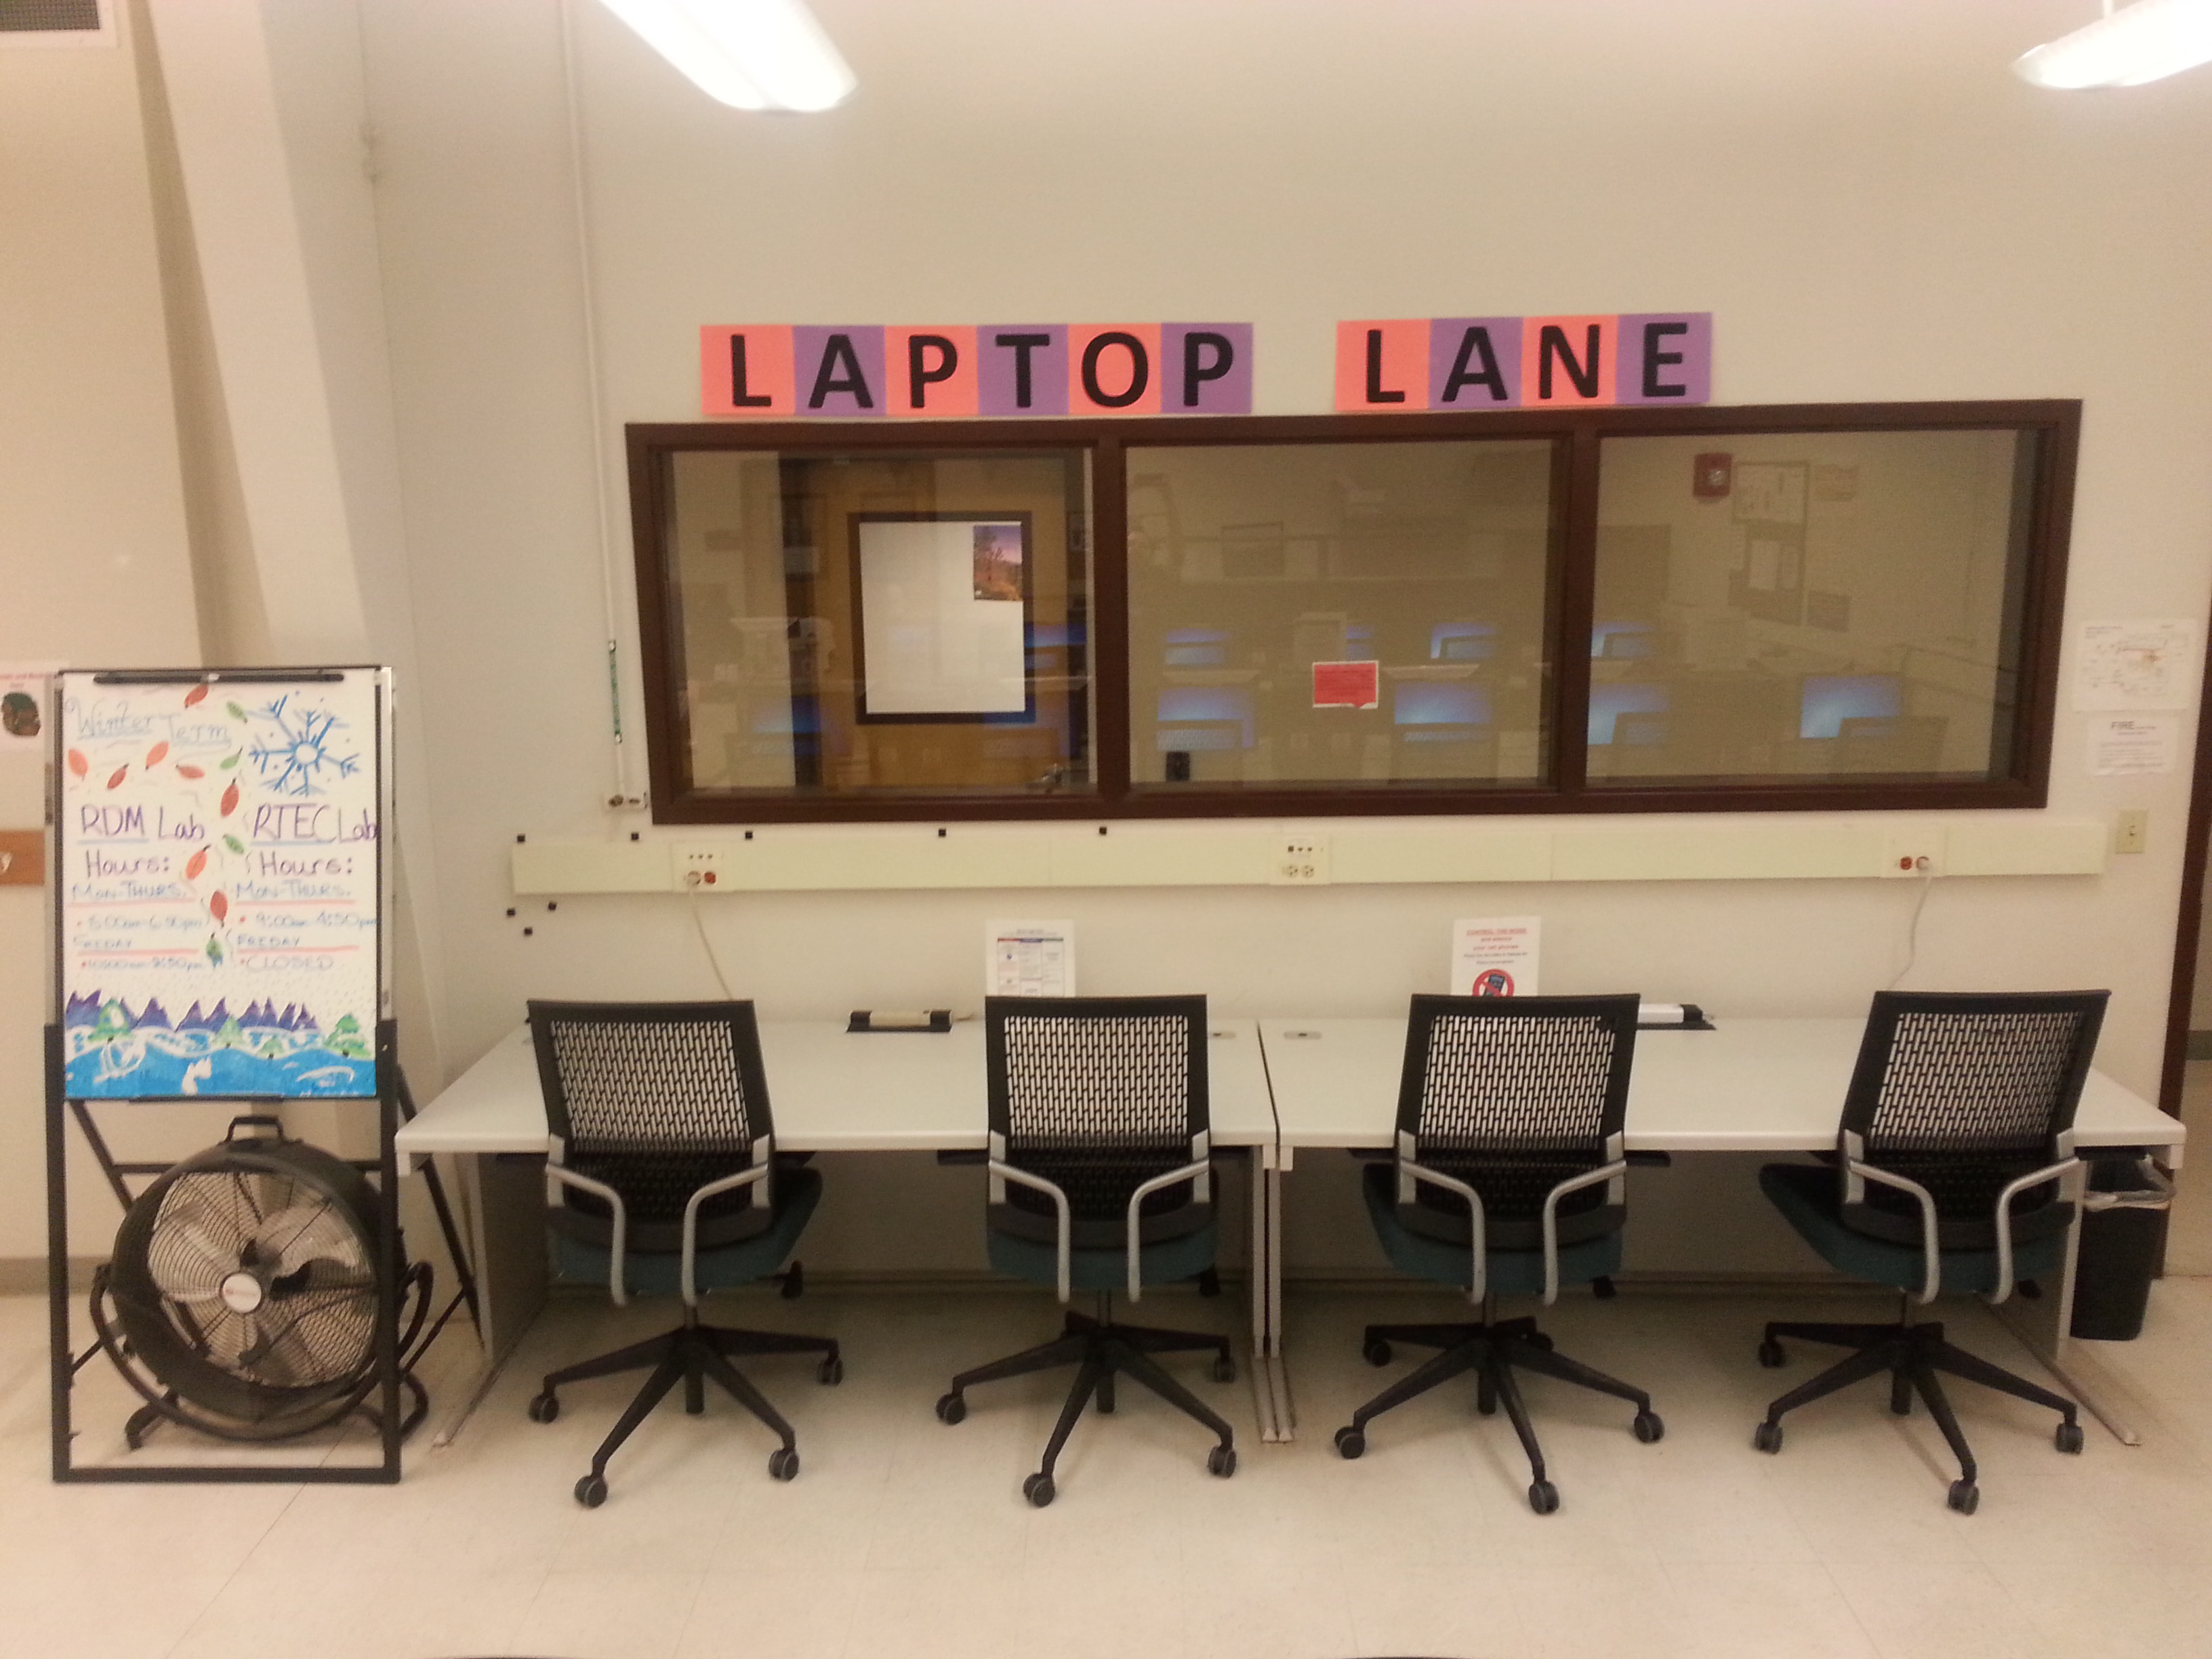 laptop lane